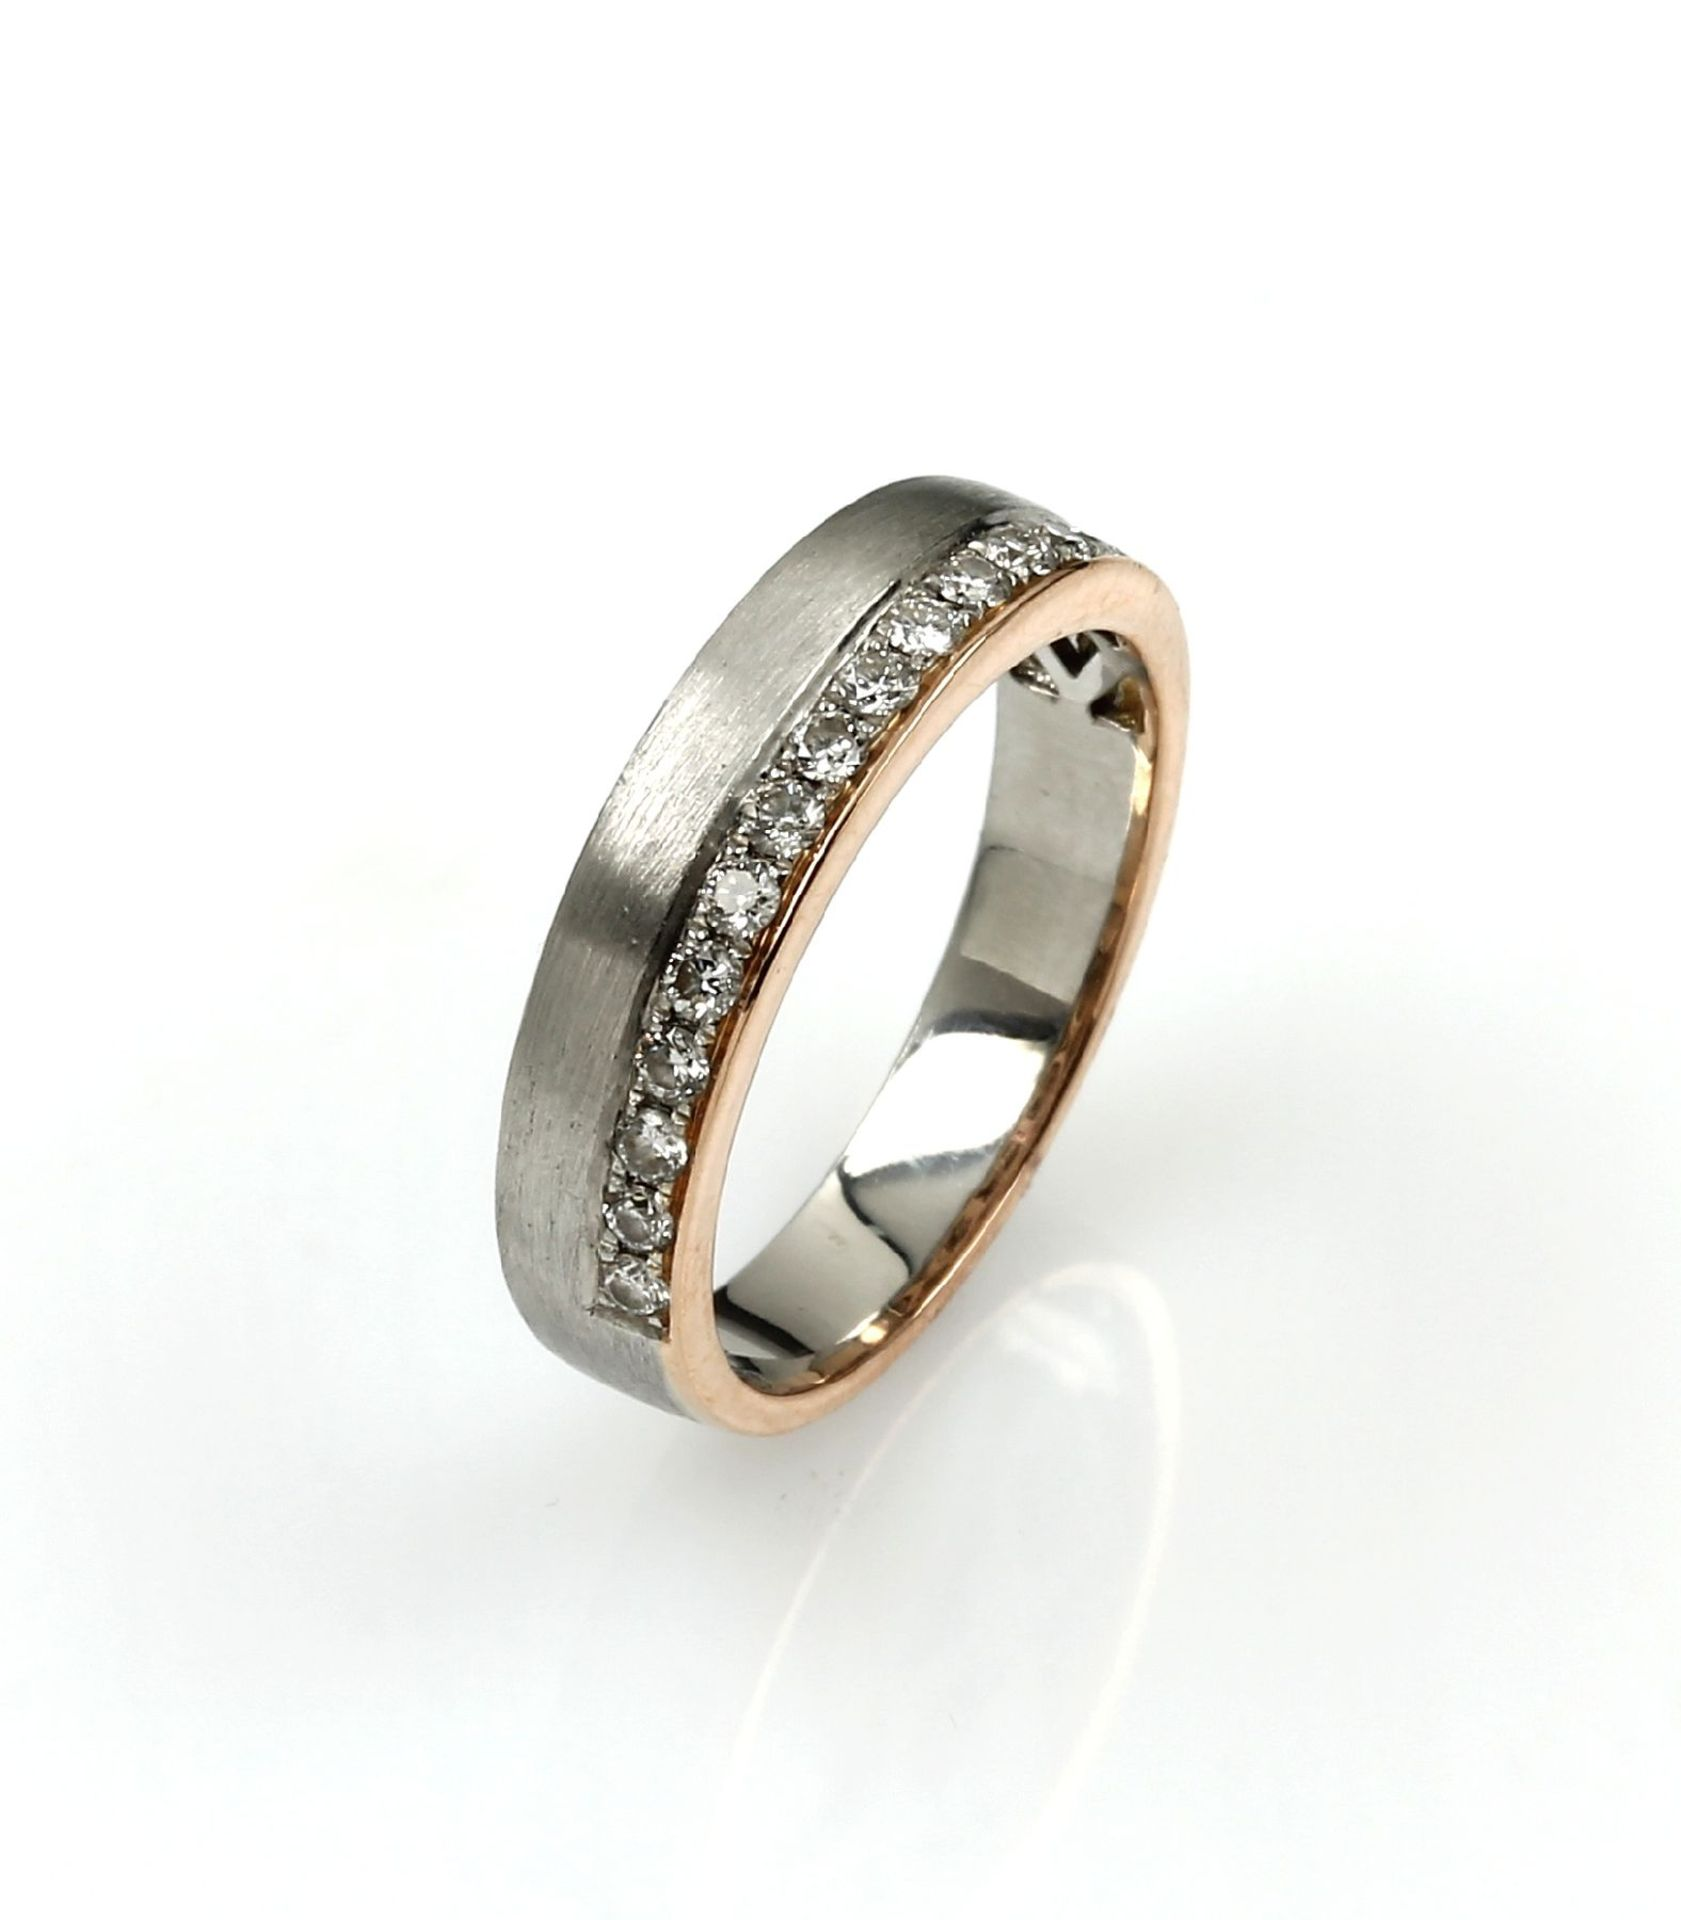 Los 61545 - Ring with brilliants , platinum and RoseG 750/000, 16 brilliants total approx. 0.5 ct Top